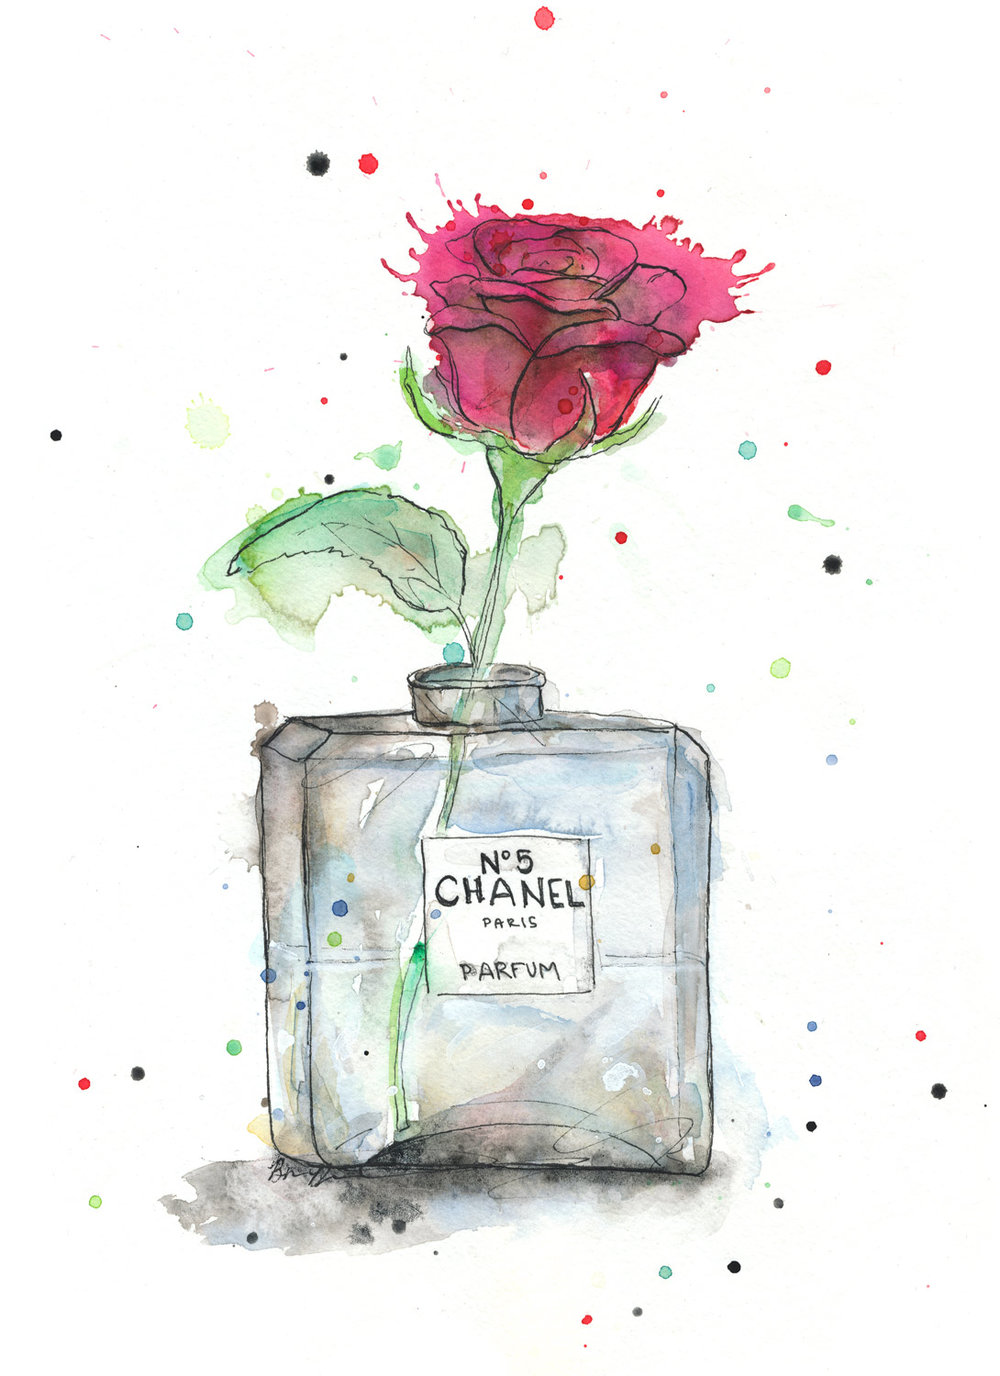 Benjamin-Edward-Chanel-Number-5-No-5-Rose-watercolour-illustration.jpg